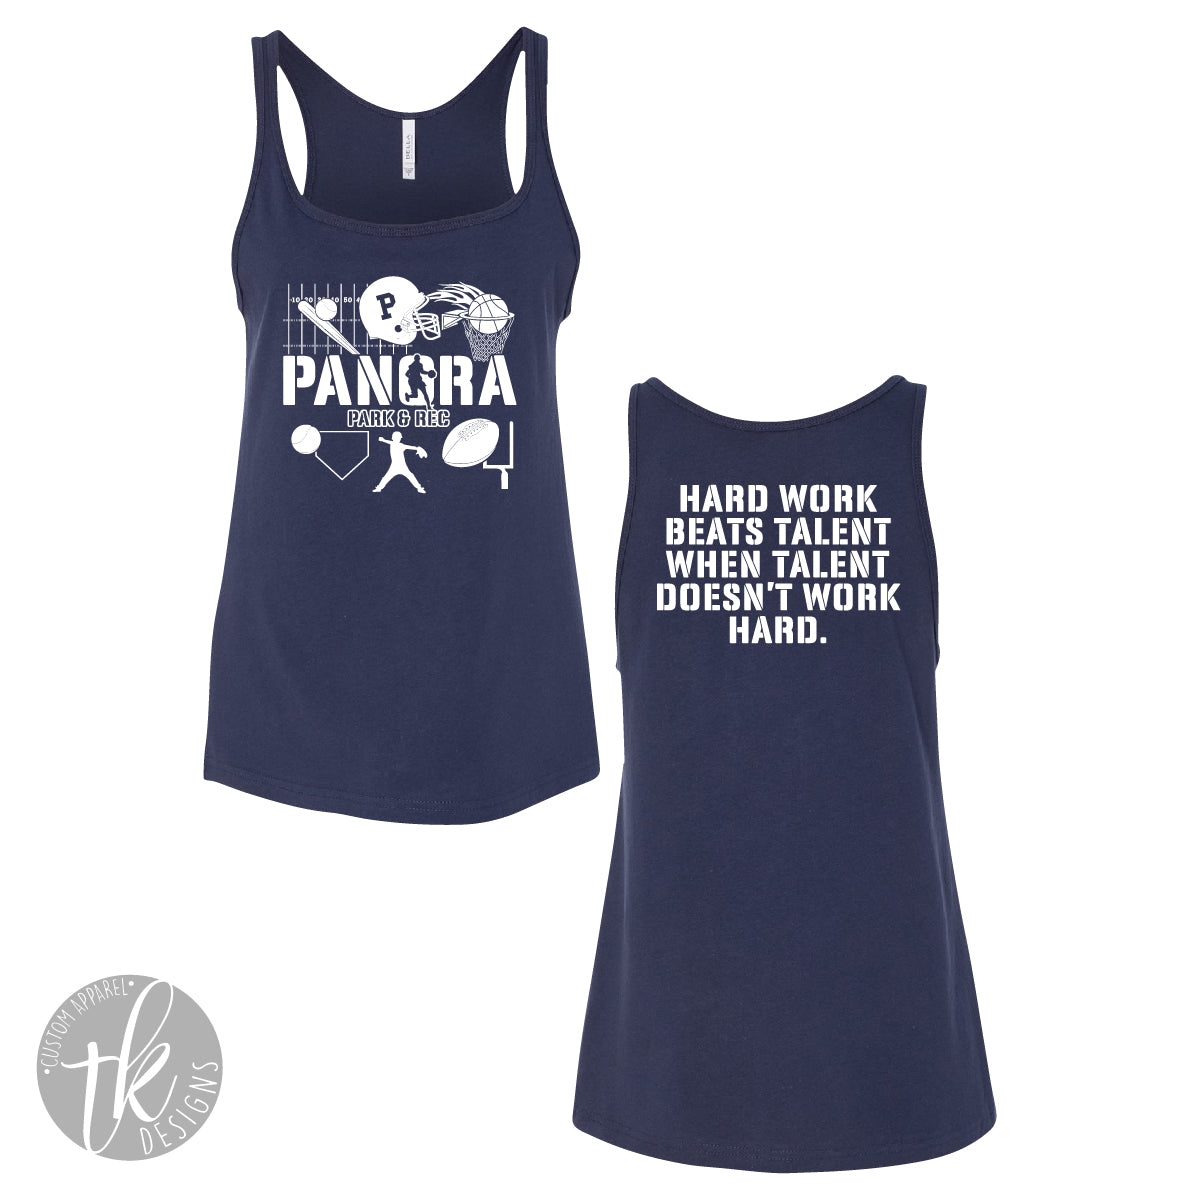 Parks & Rec Womans Relaxed Jersey Tank